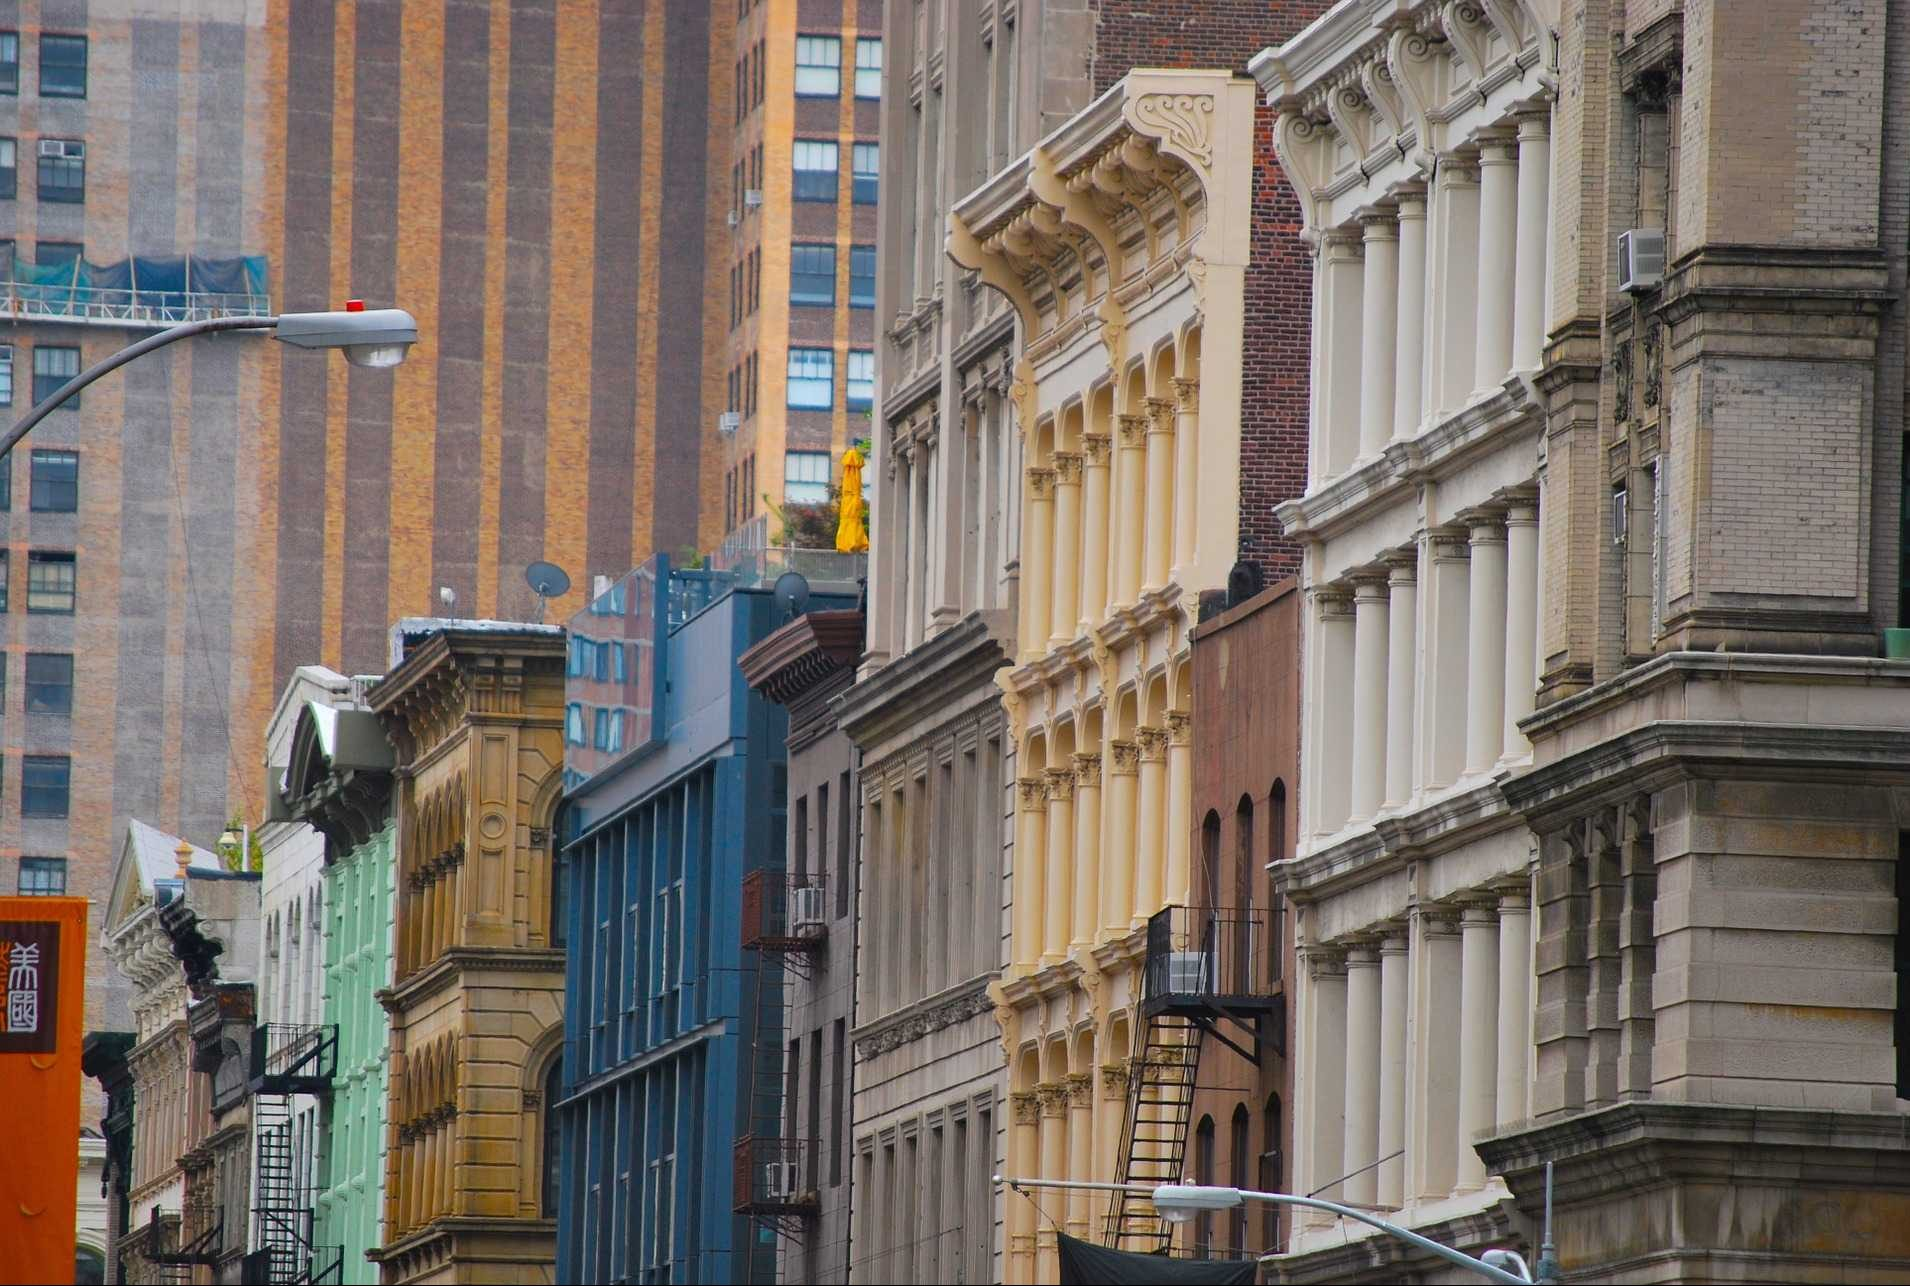 buildings in SoHo New York City with cast-iron architecture